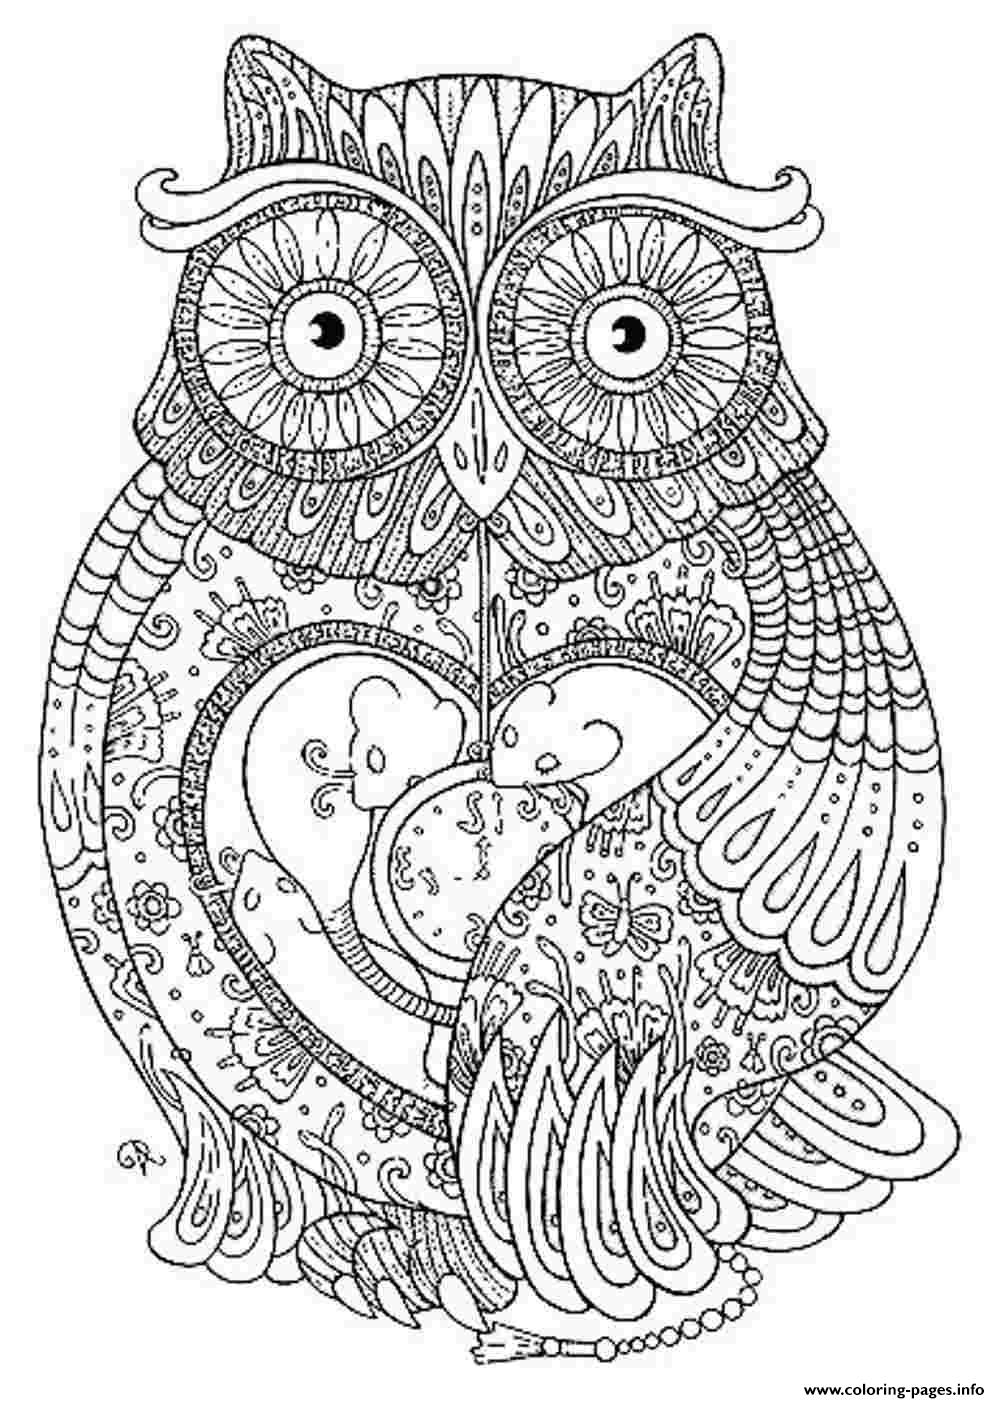 Animal Coloring Pages For Adults Coloring Pages Printable | free printable coloring pages for adults only animals